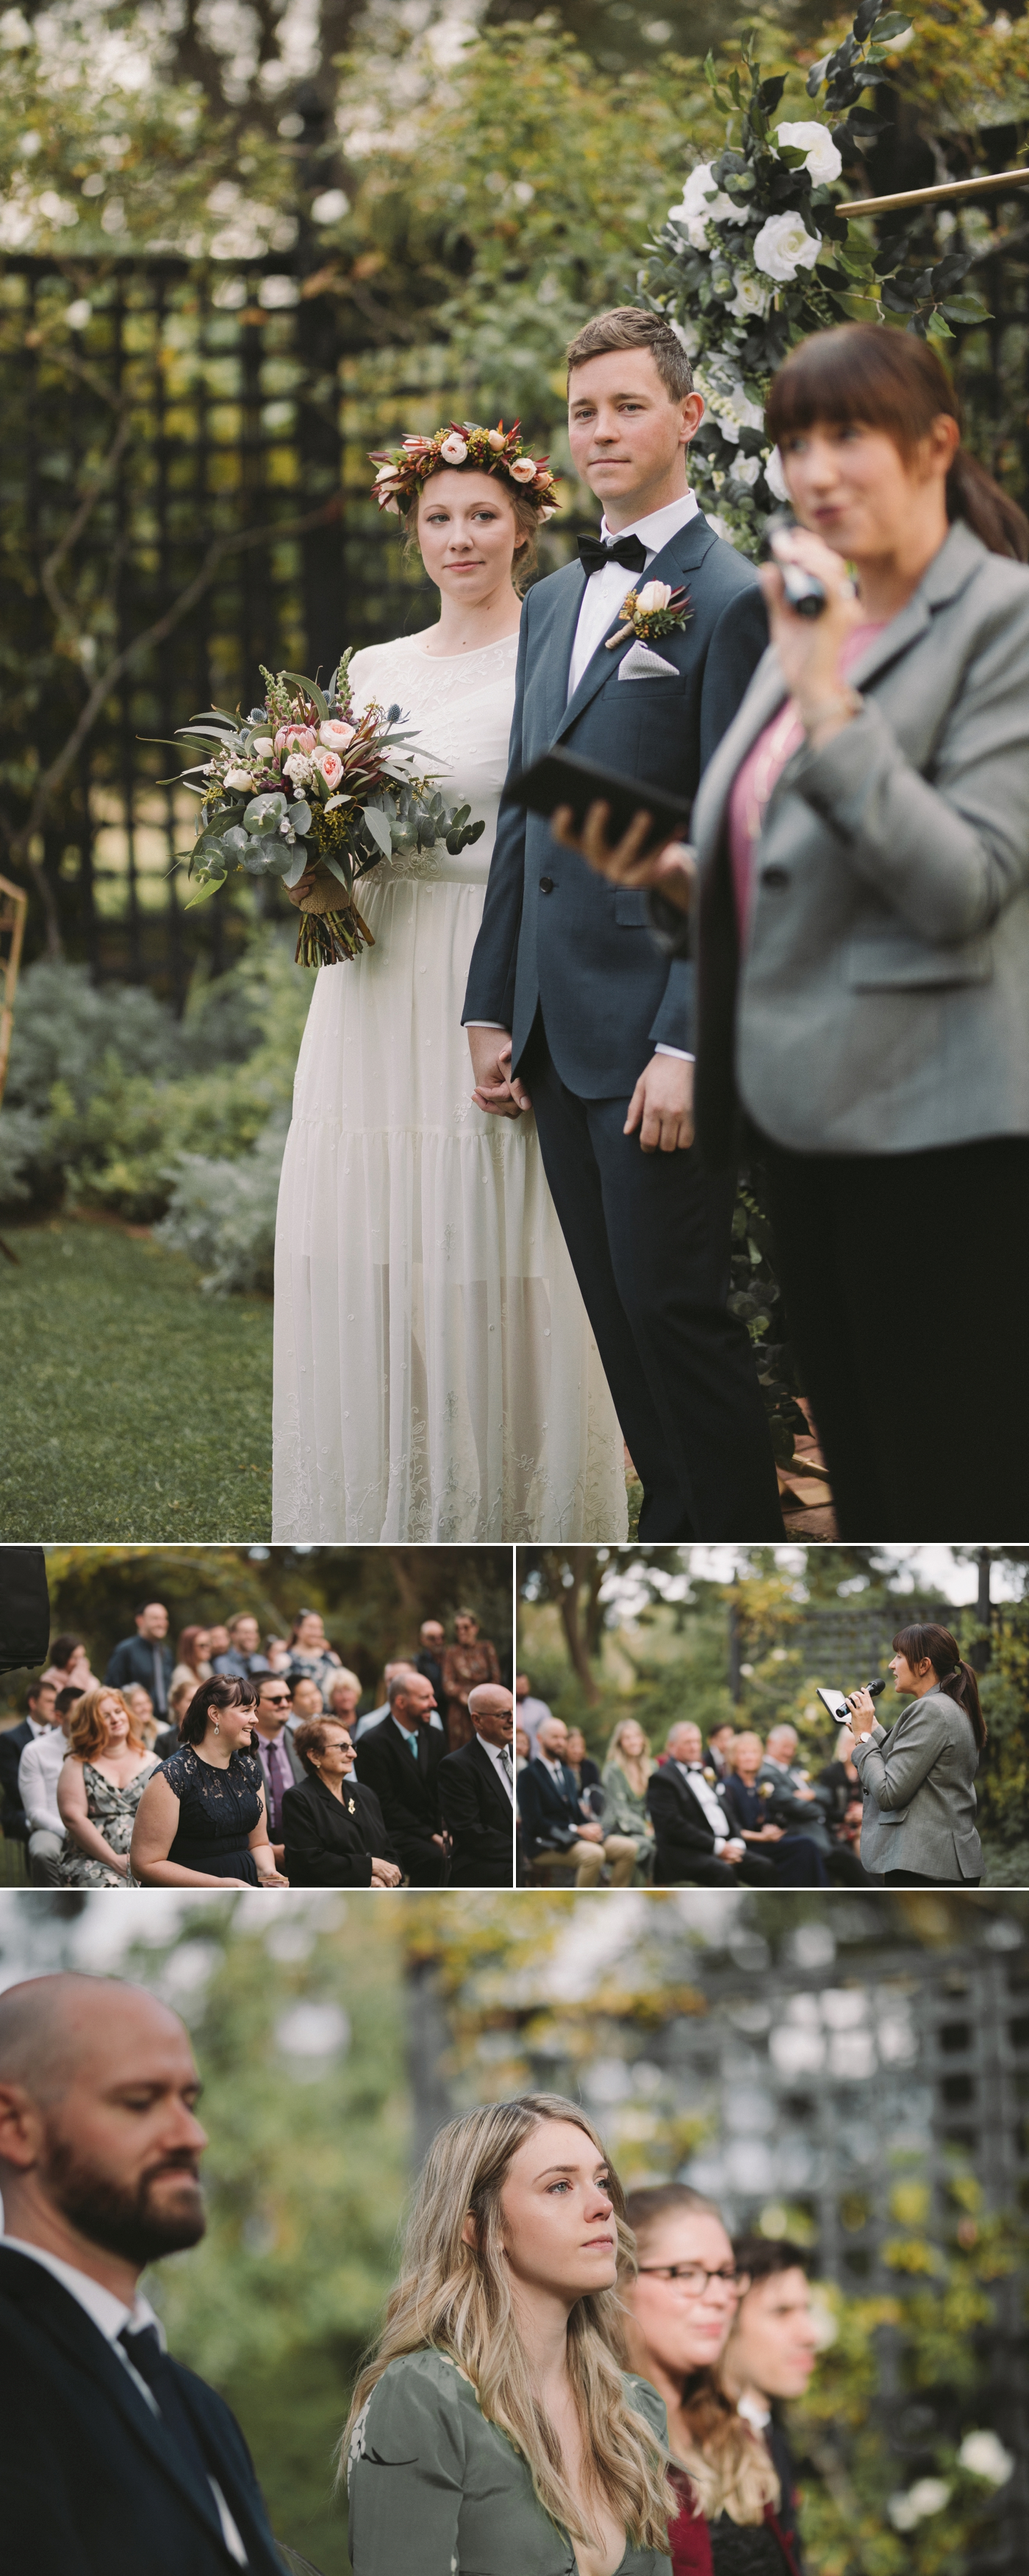 Jo & Aaron - Natural Wedding Photography in Adelaide - Beautiful, modern wedding photographer - Al Ru Farm Wedding Photography - Katherine Schultz_0017.jpg